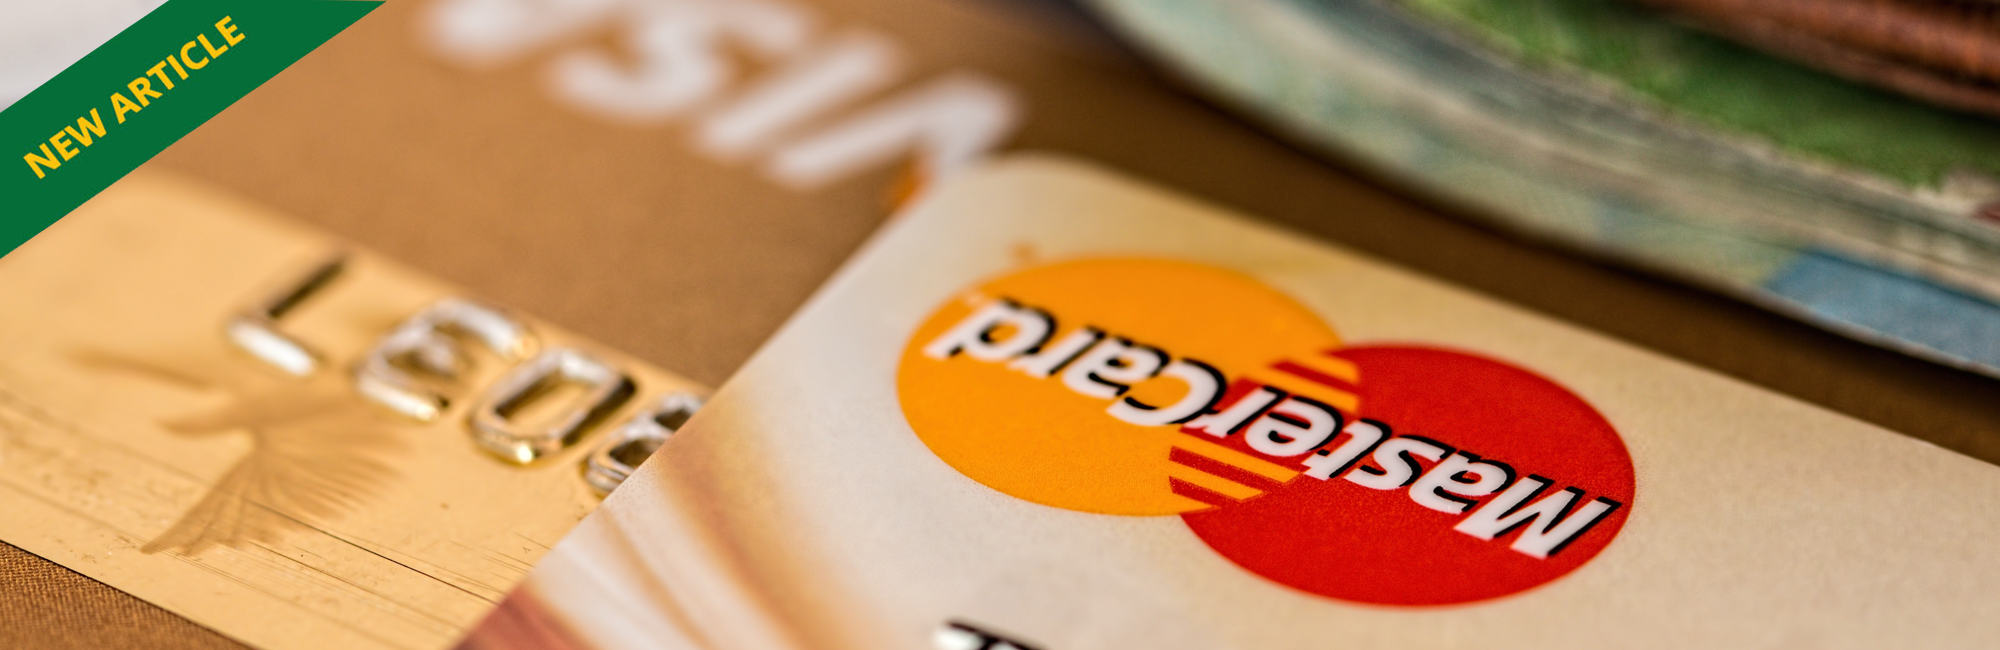 What is the average credit card debt?